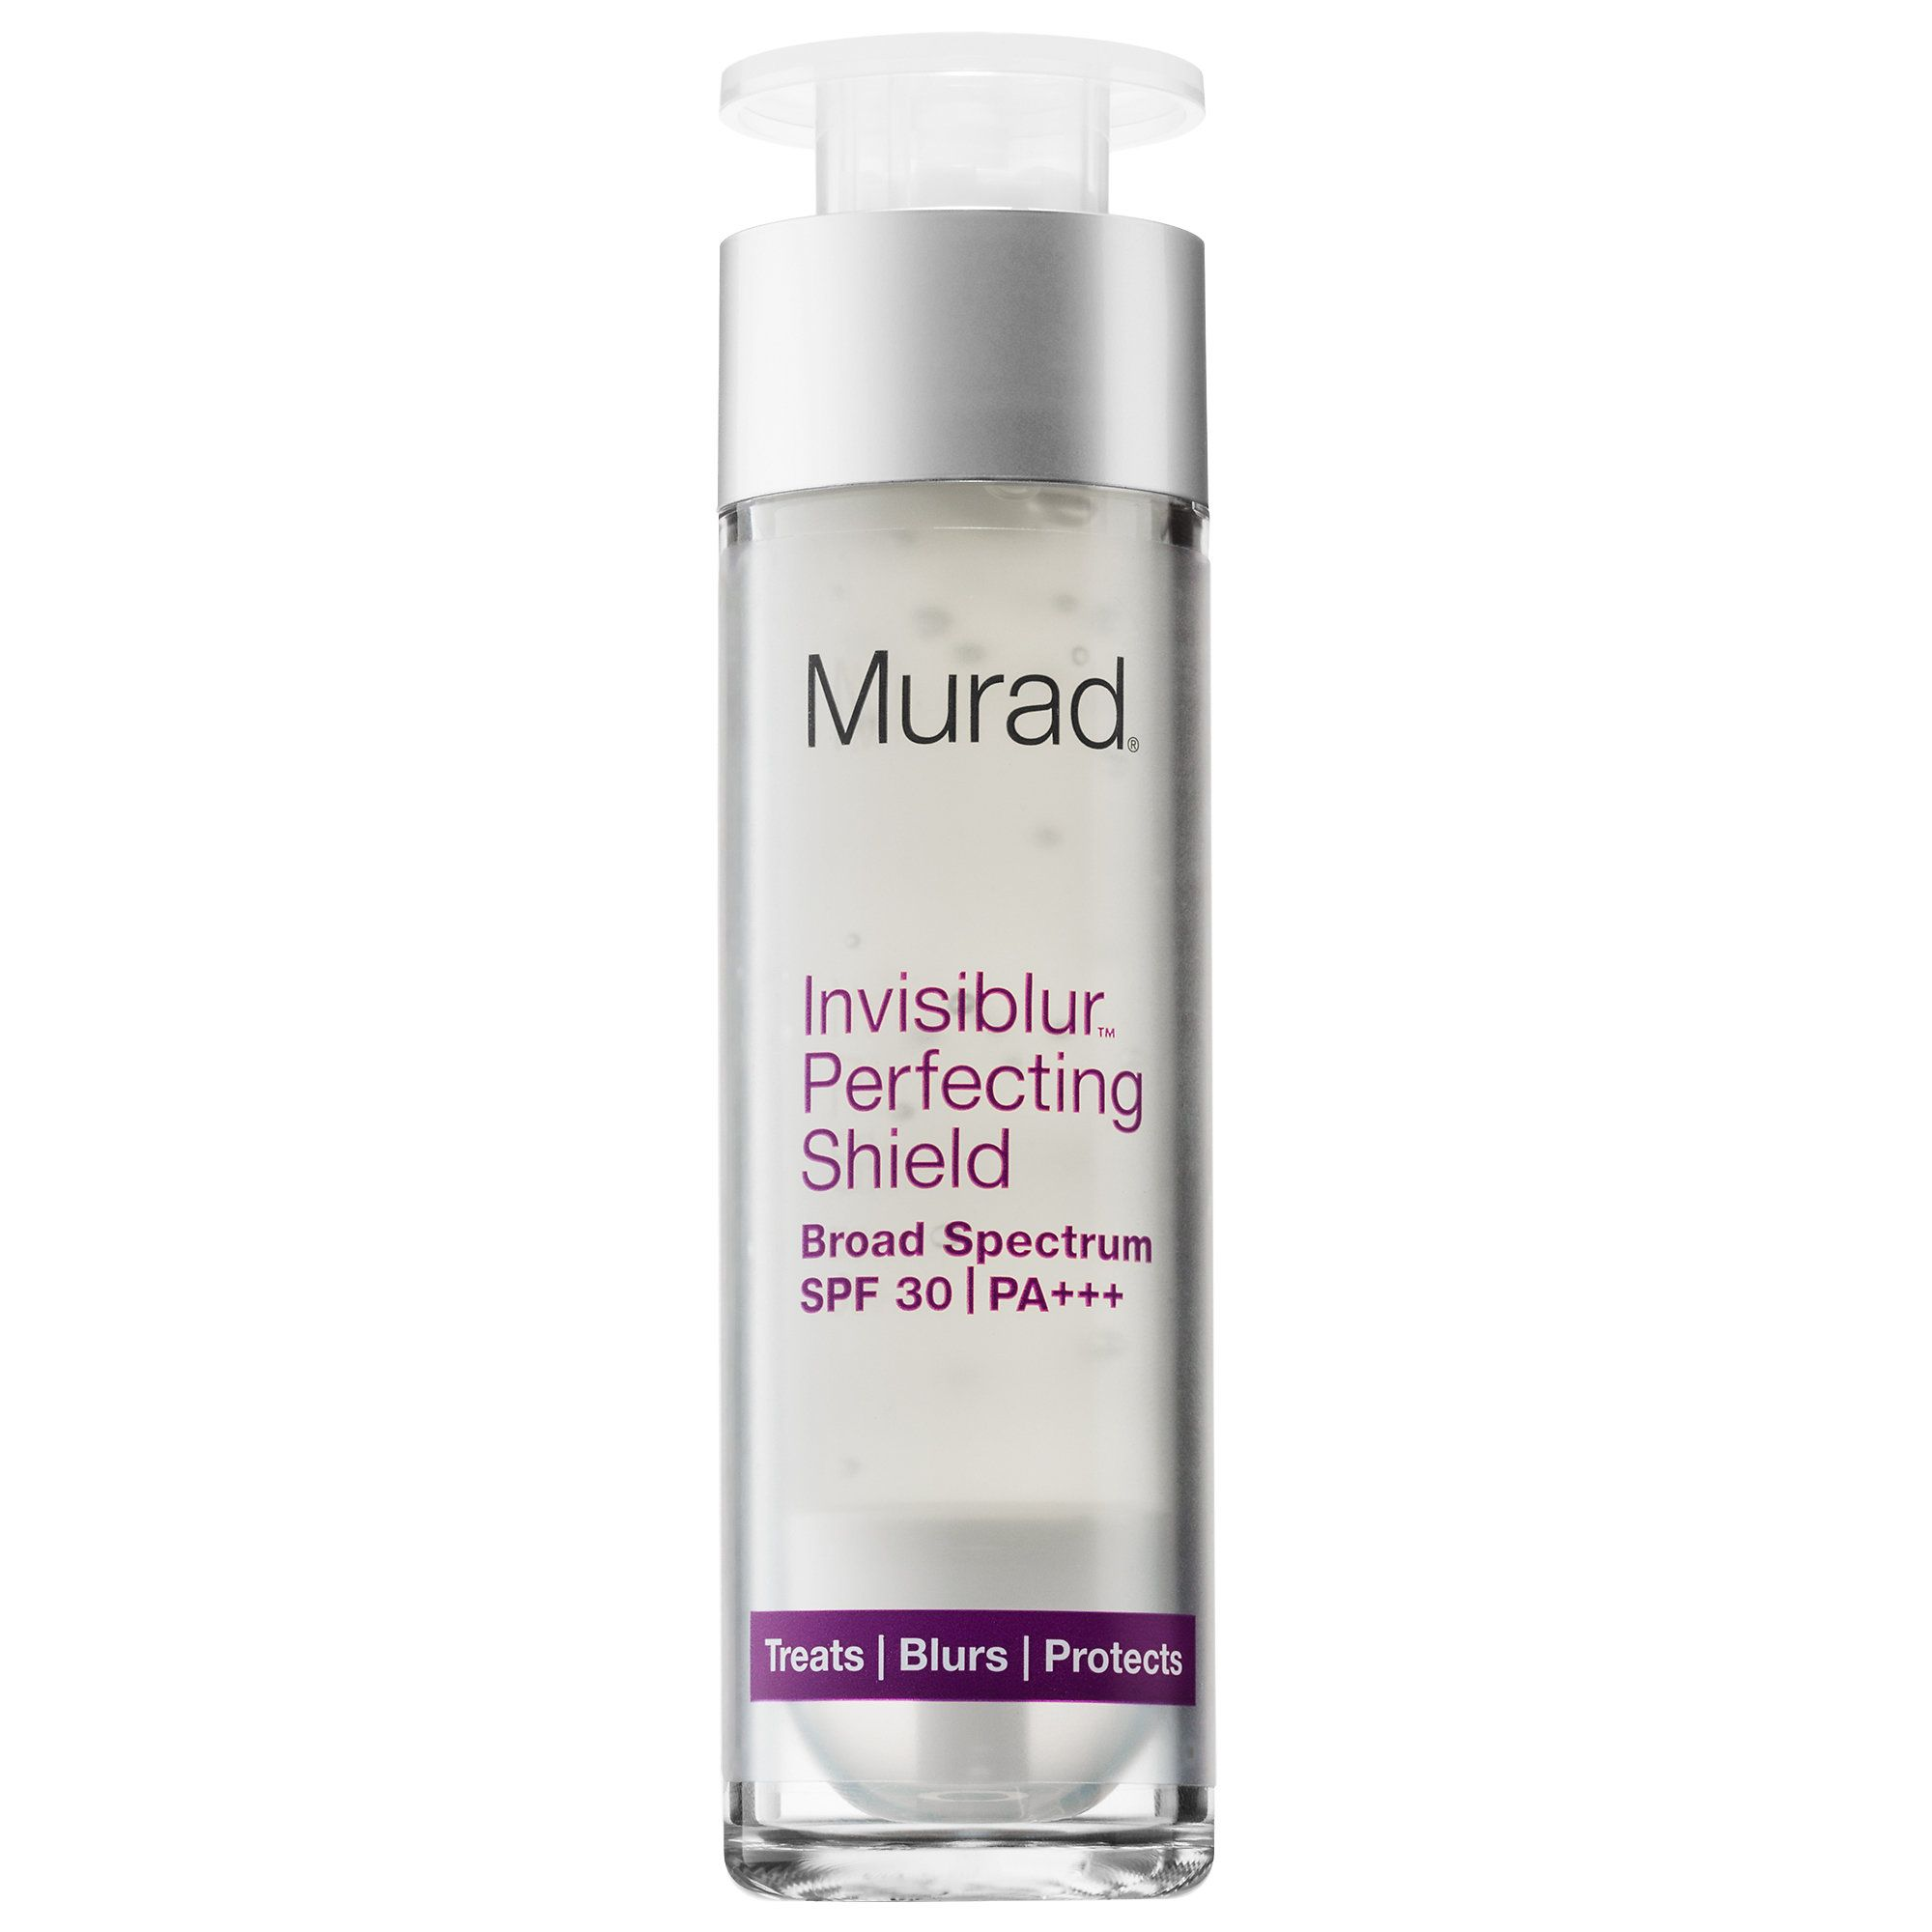 Invisiblur Perfecting Shield Broad Spectrum Spf 30 Pa Murad Sephora Spf 30 Cosmetics Fragrance Broad Spectrum